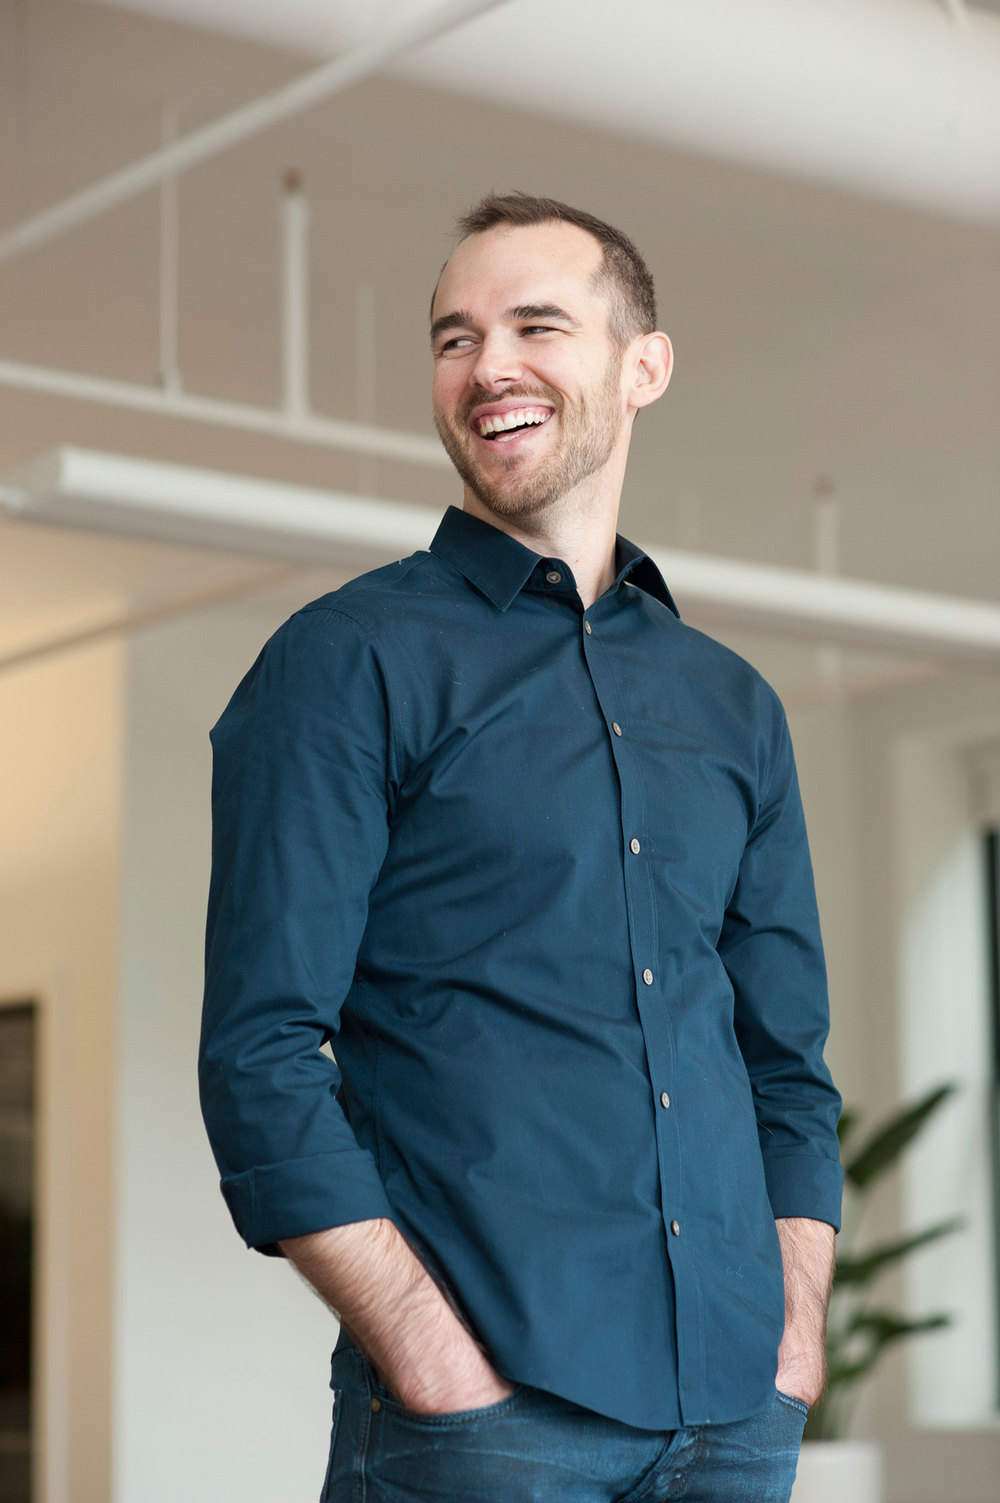 Jared McDaniel, Help Scout Co-Founder